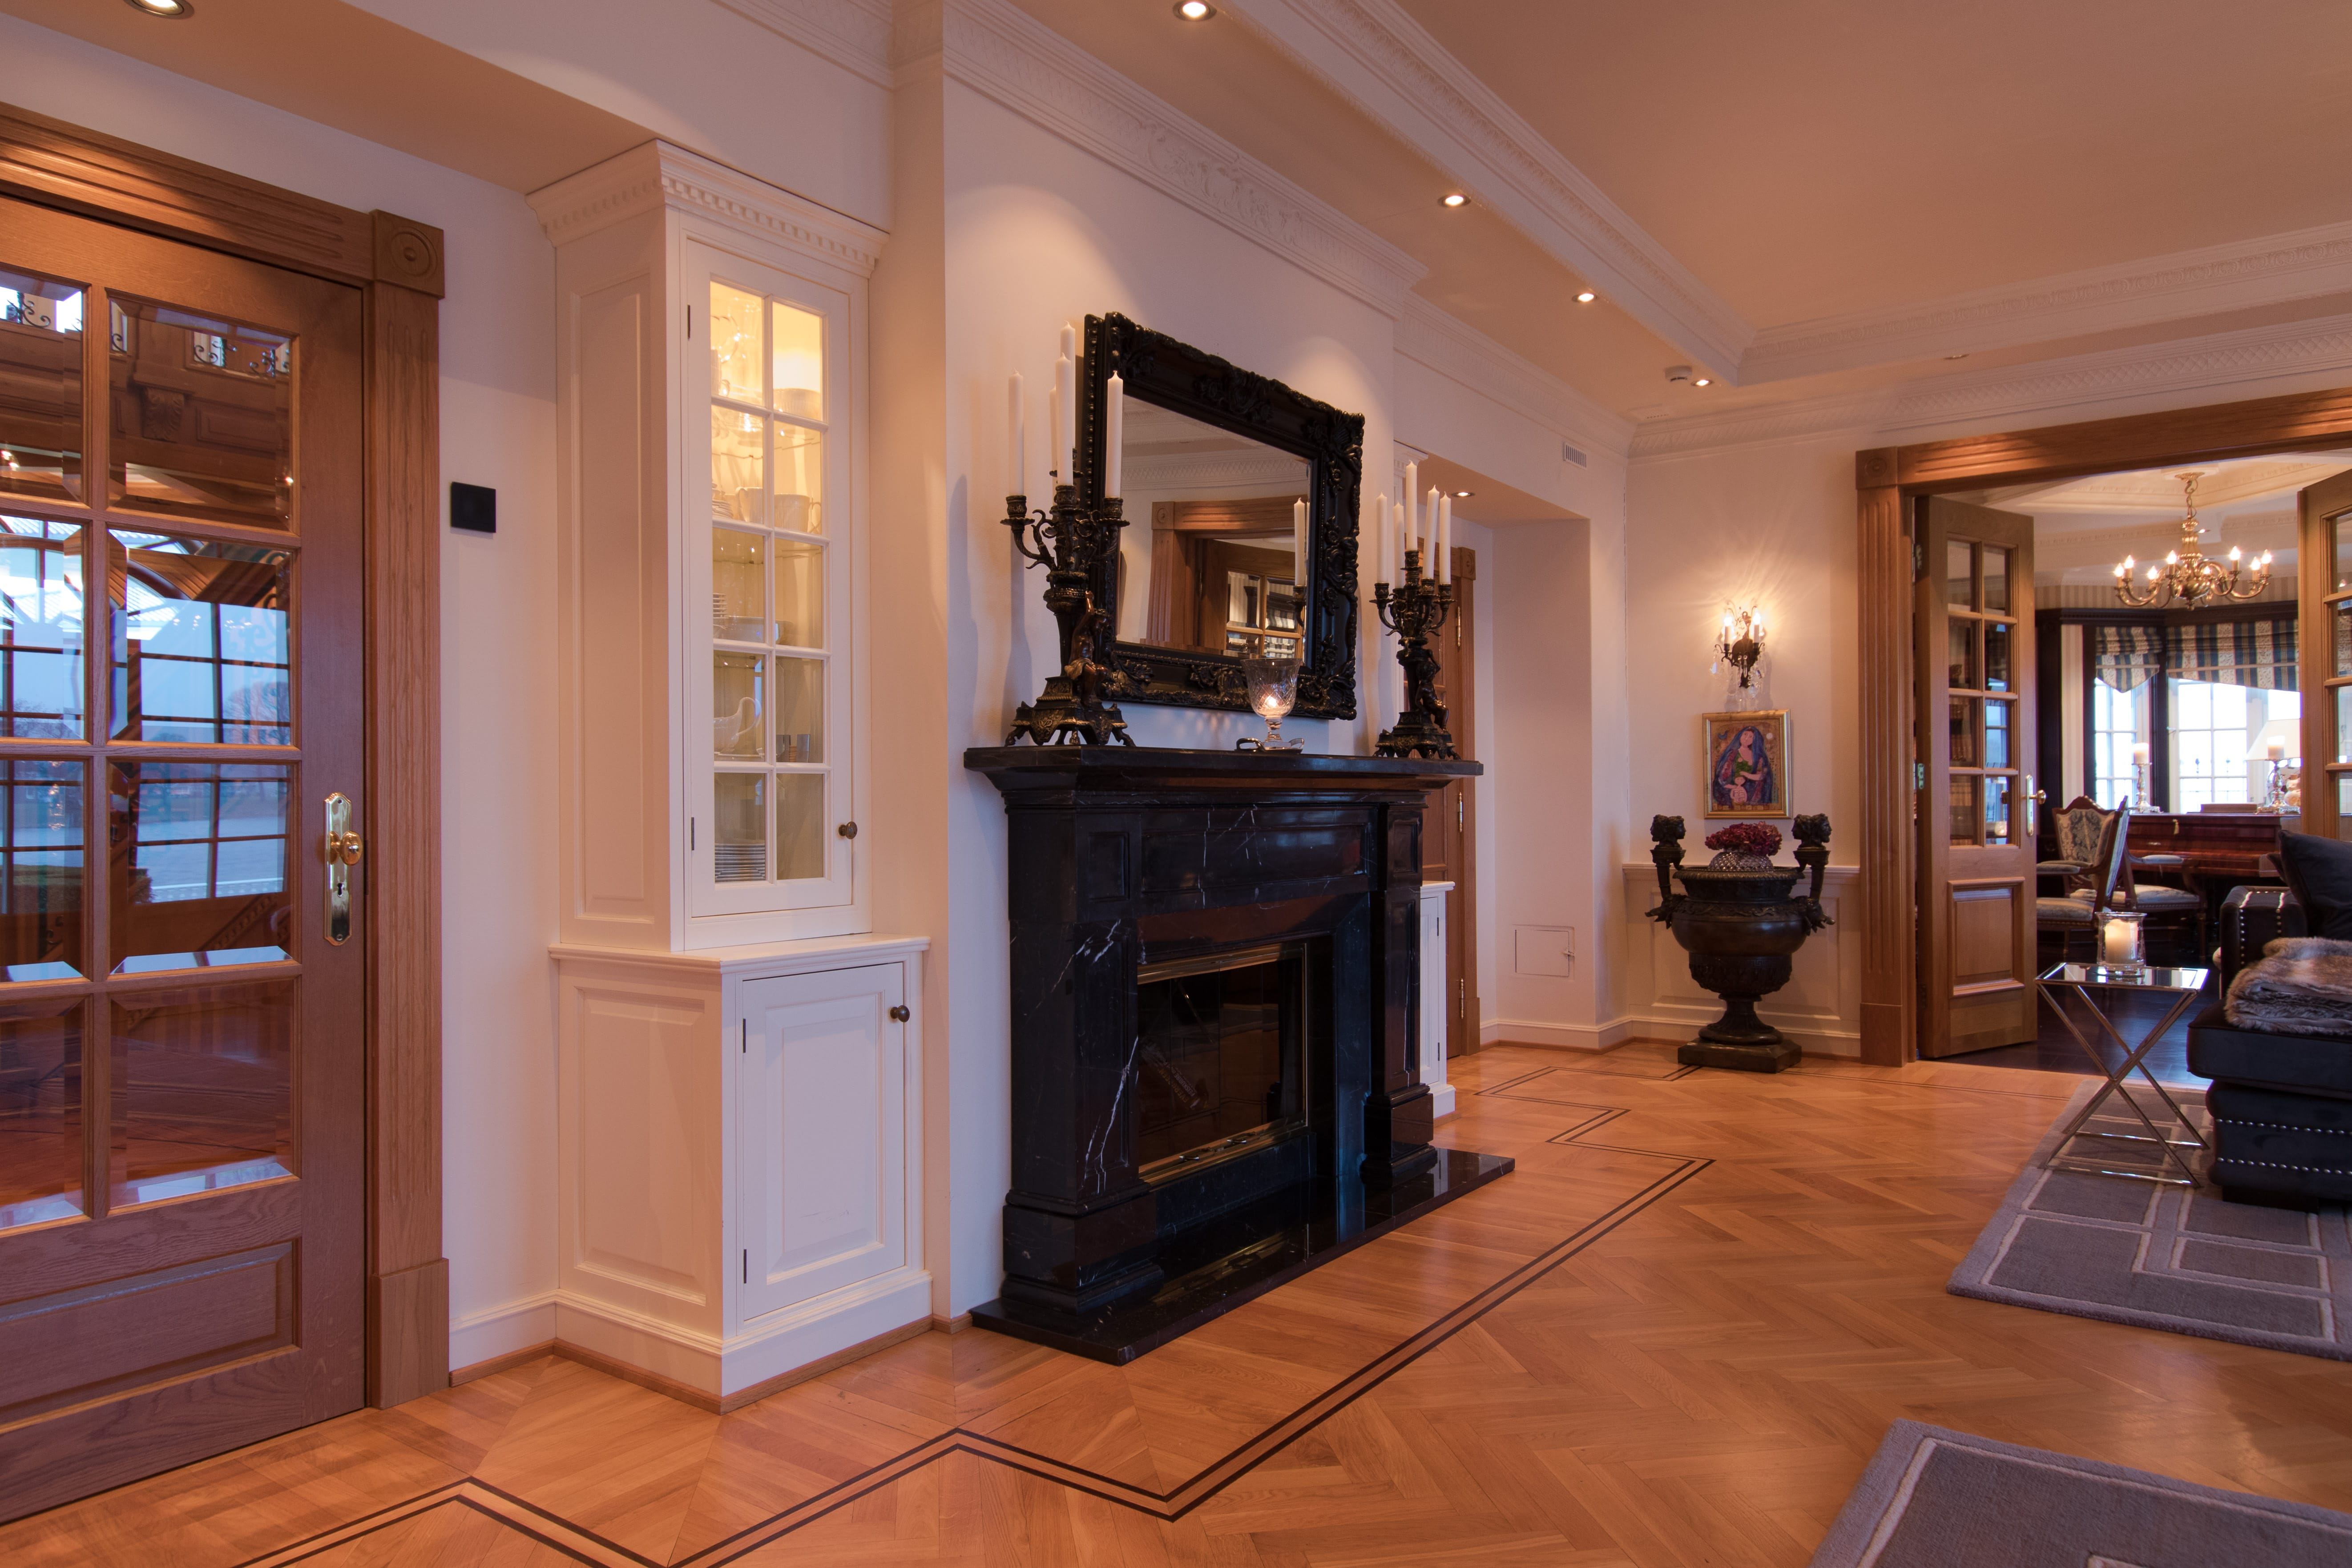 Beautiful flooring, downlights and room for life.